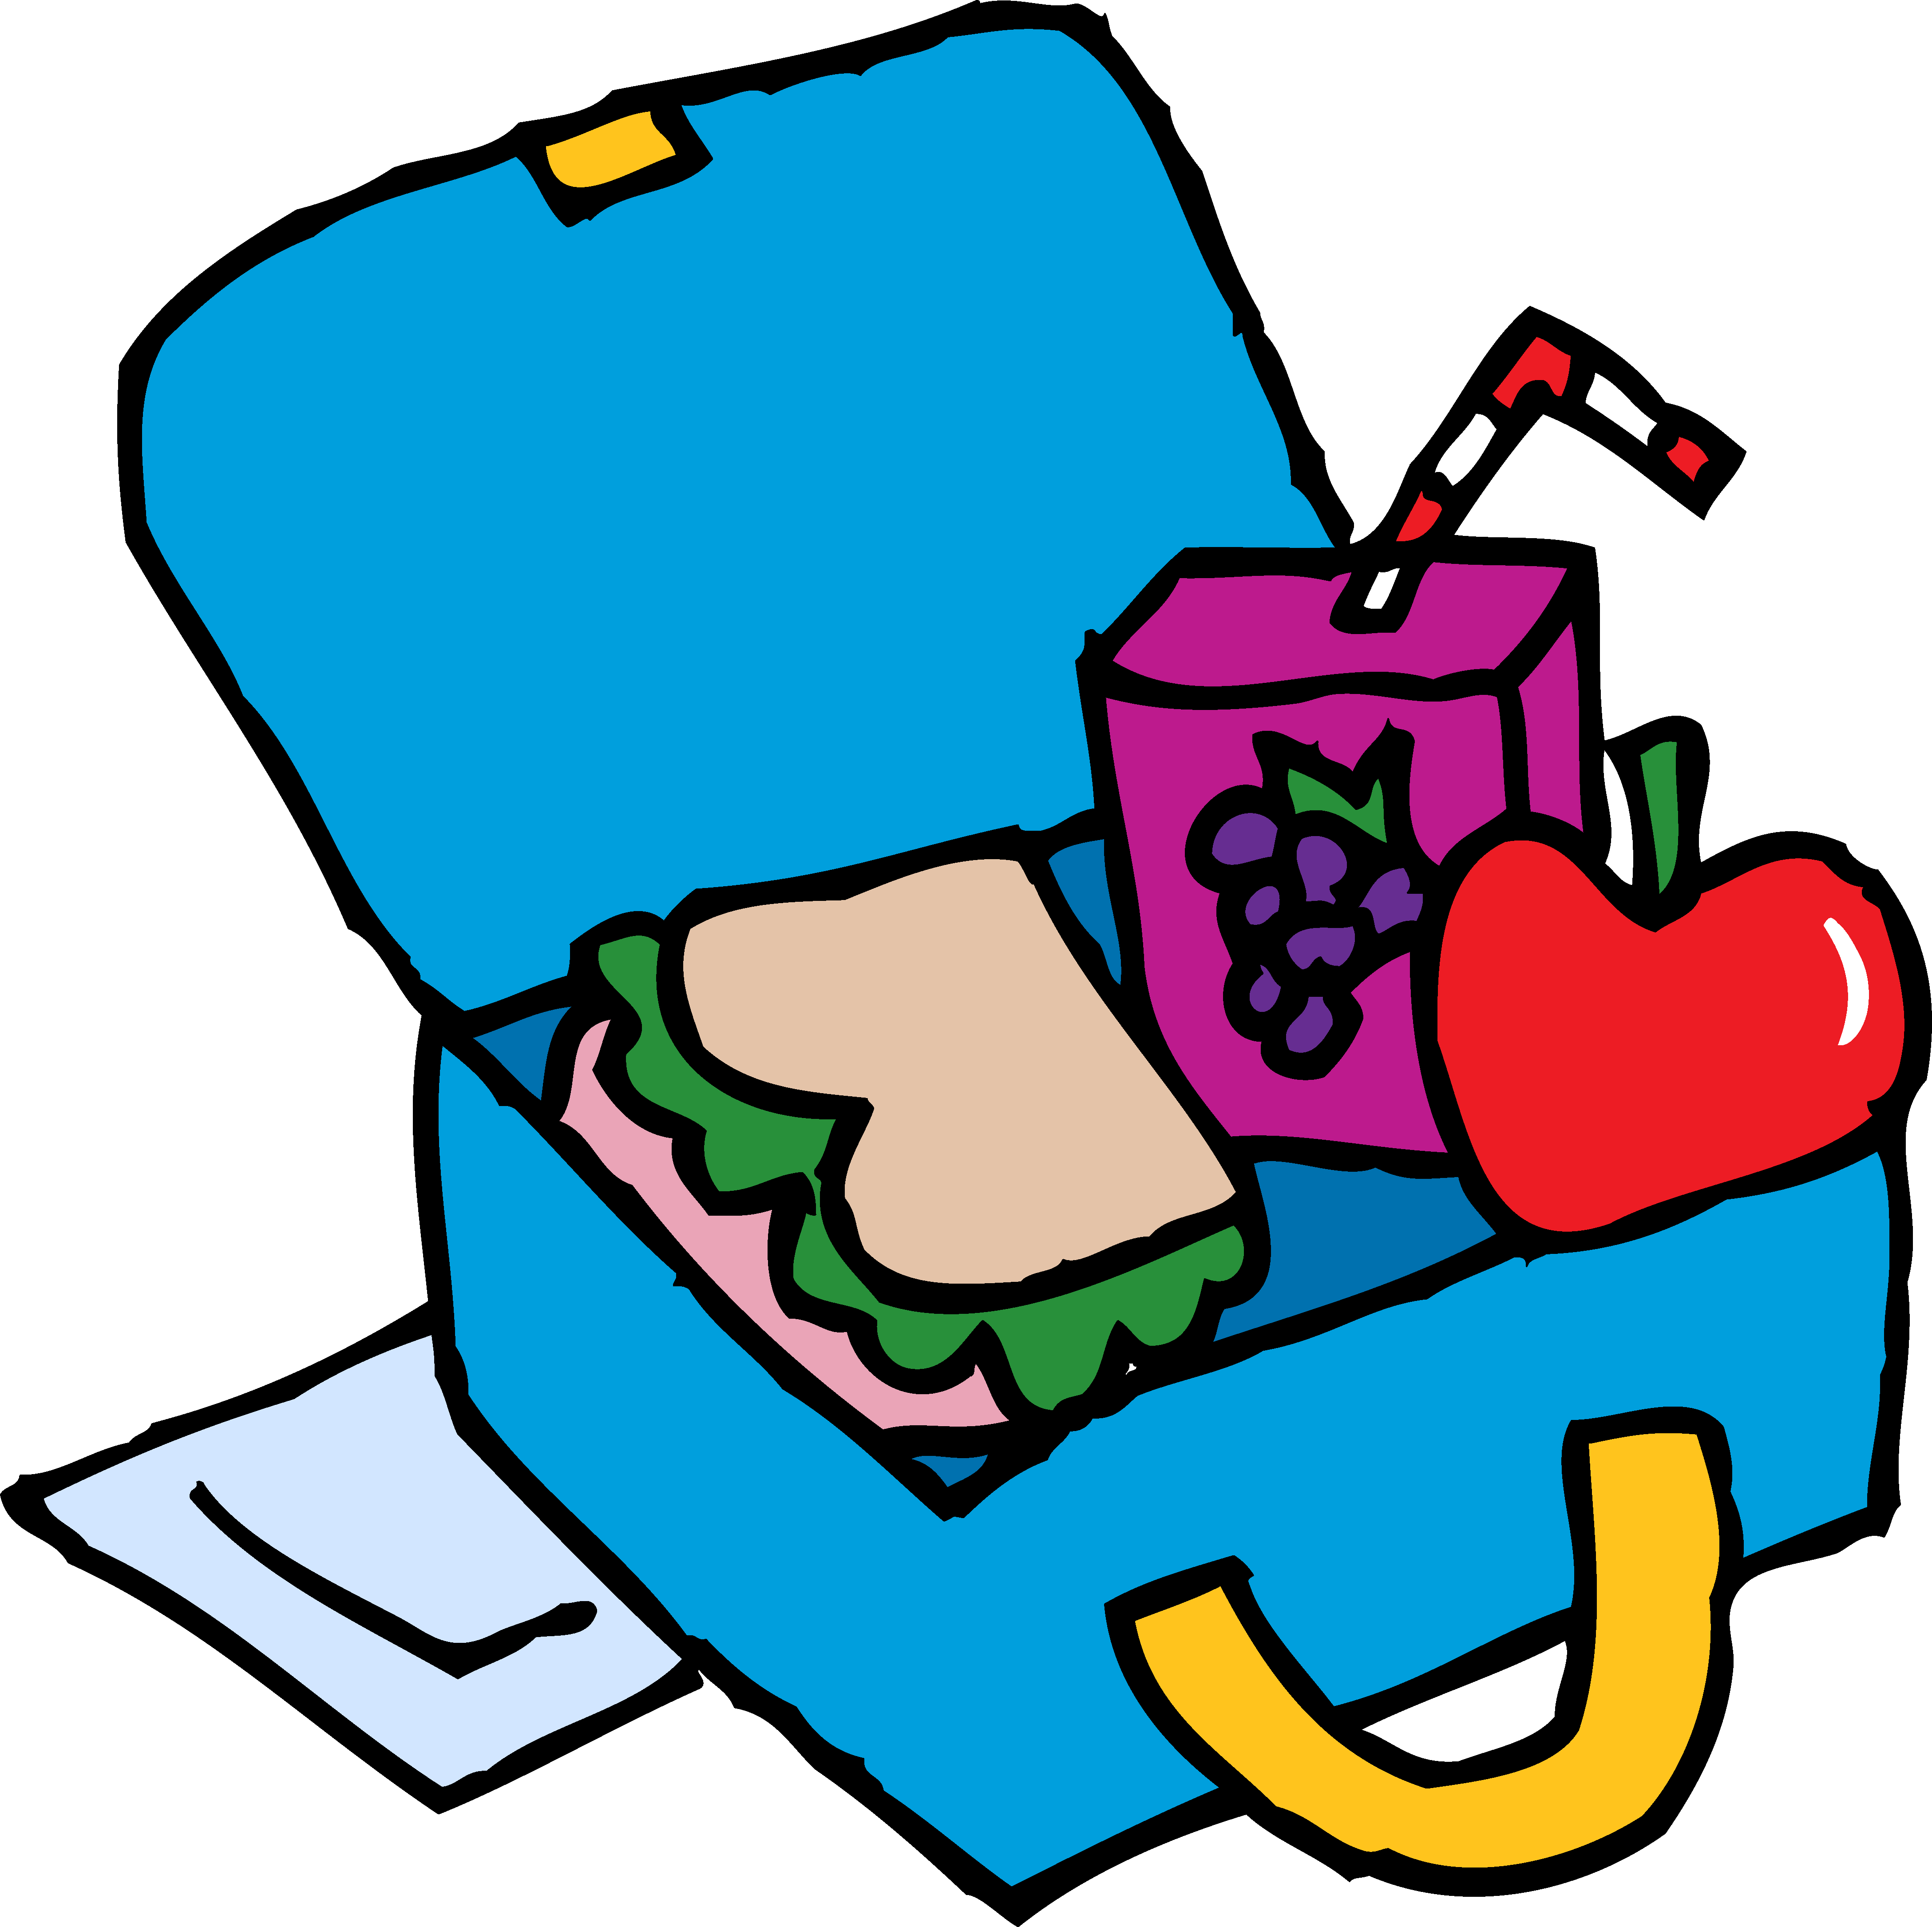 School lunch tray clipart png library stock Blue Lunch Box Clip Art with apple sandwich juice free image png library stock